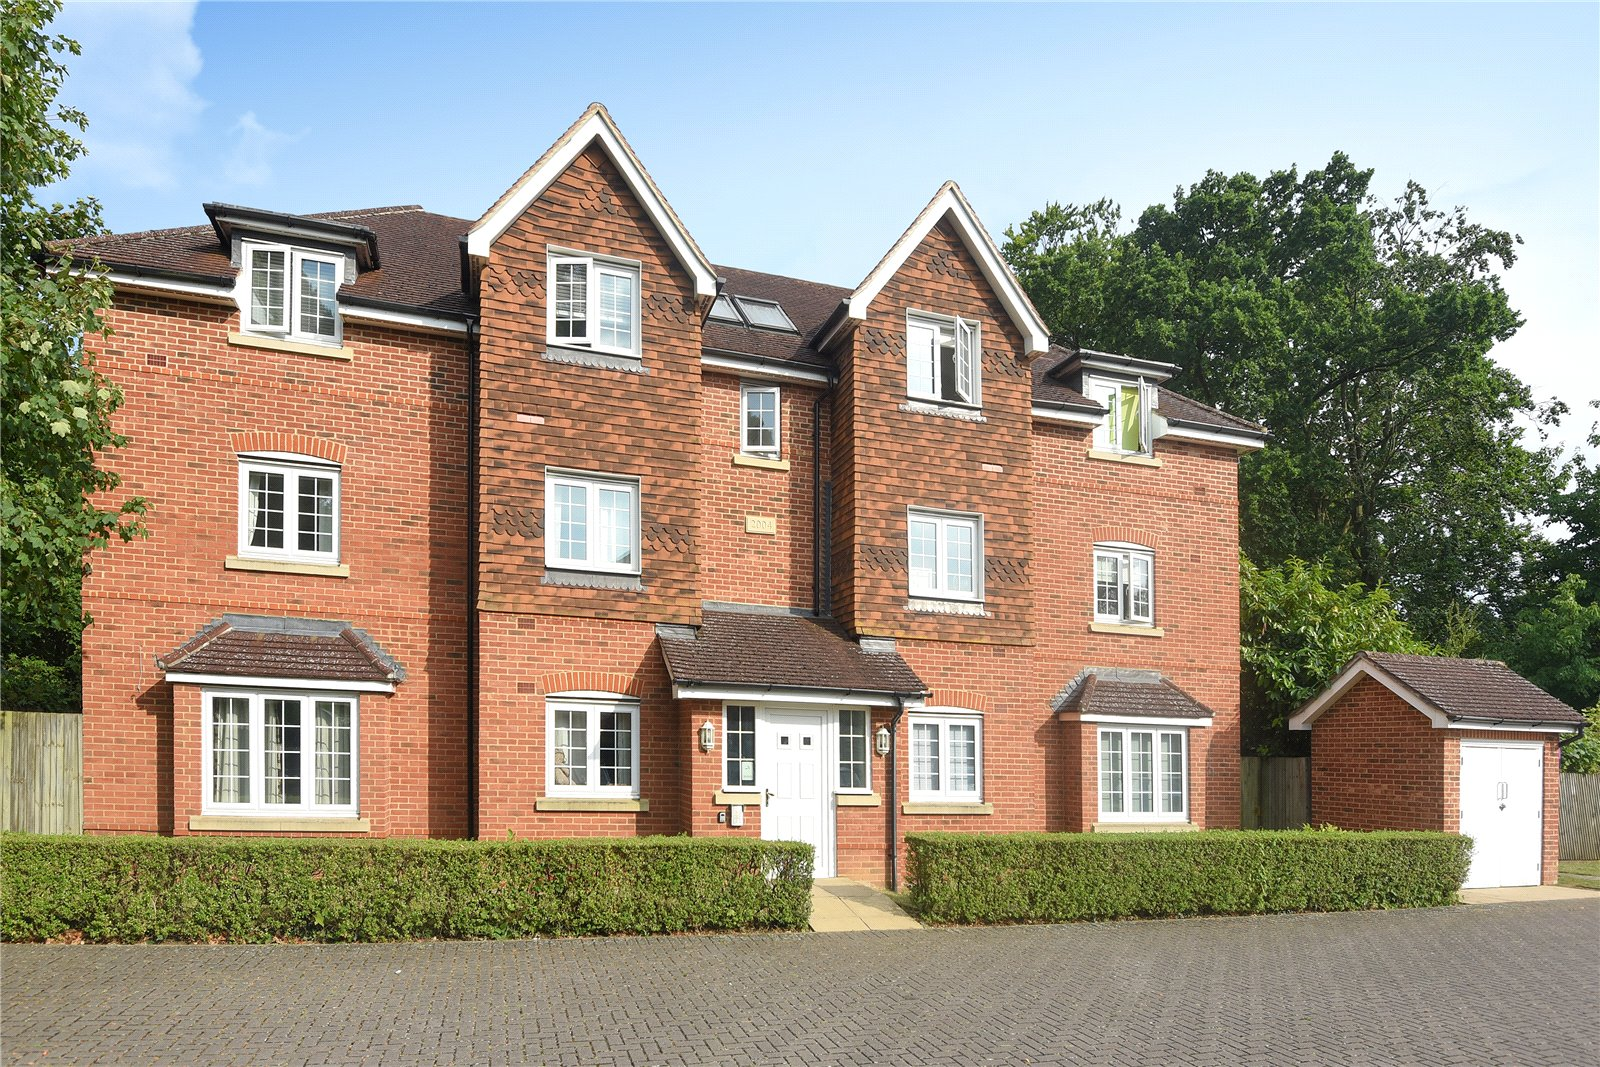 2 Bedrooms Apartment Flat for sale in Landen Grove, Wokingham, Berkshire, RG41